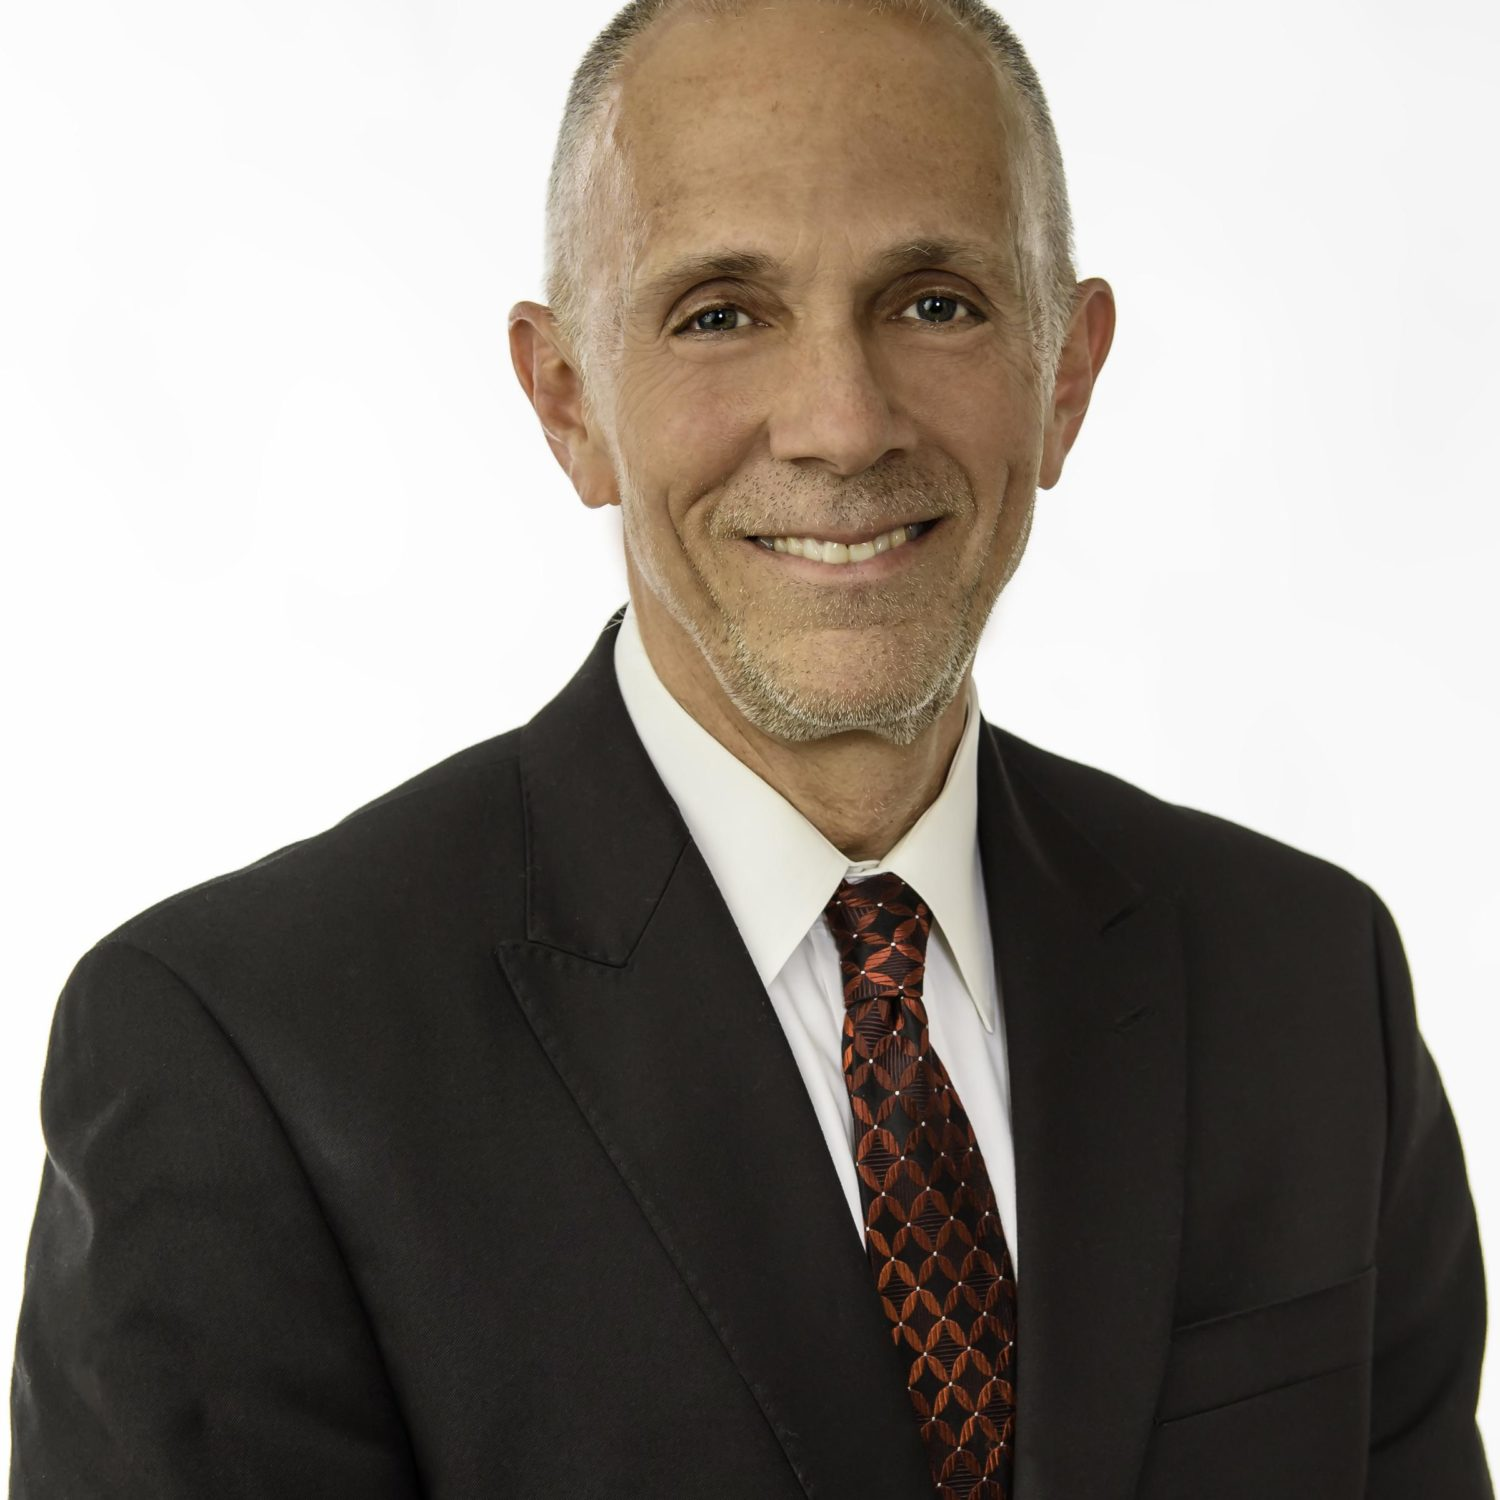 Paul R. Sachs is the Executive Director for Merakey-Philadelphia, a division of Merakey USA, a multi-state nonprofit organization working with underserved individuals who have mental illness, substance use disorders and intellectual disabilities.